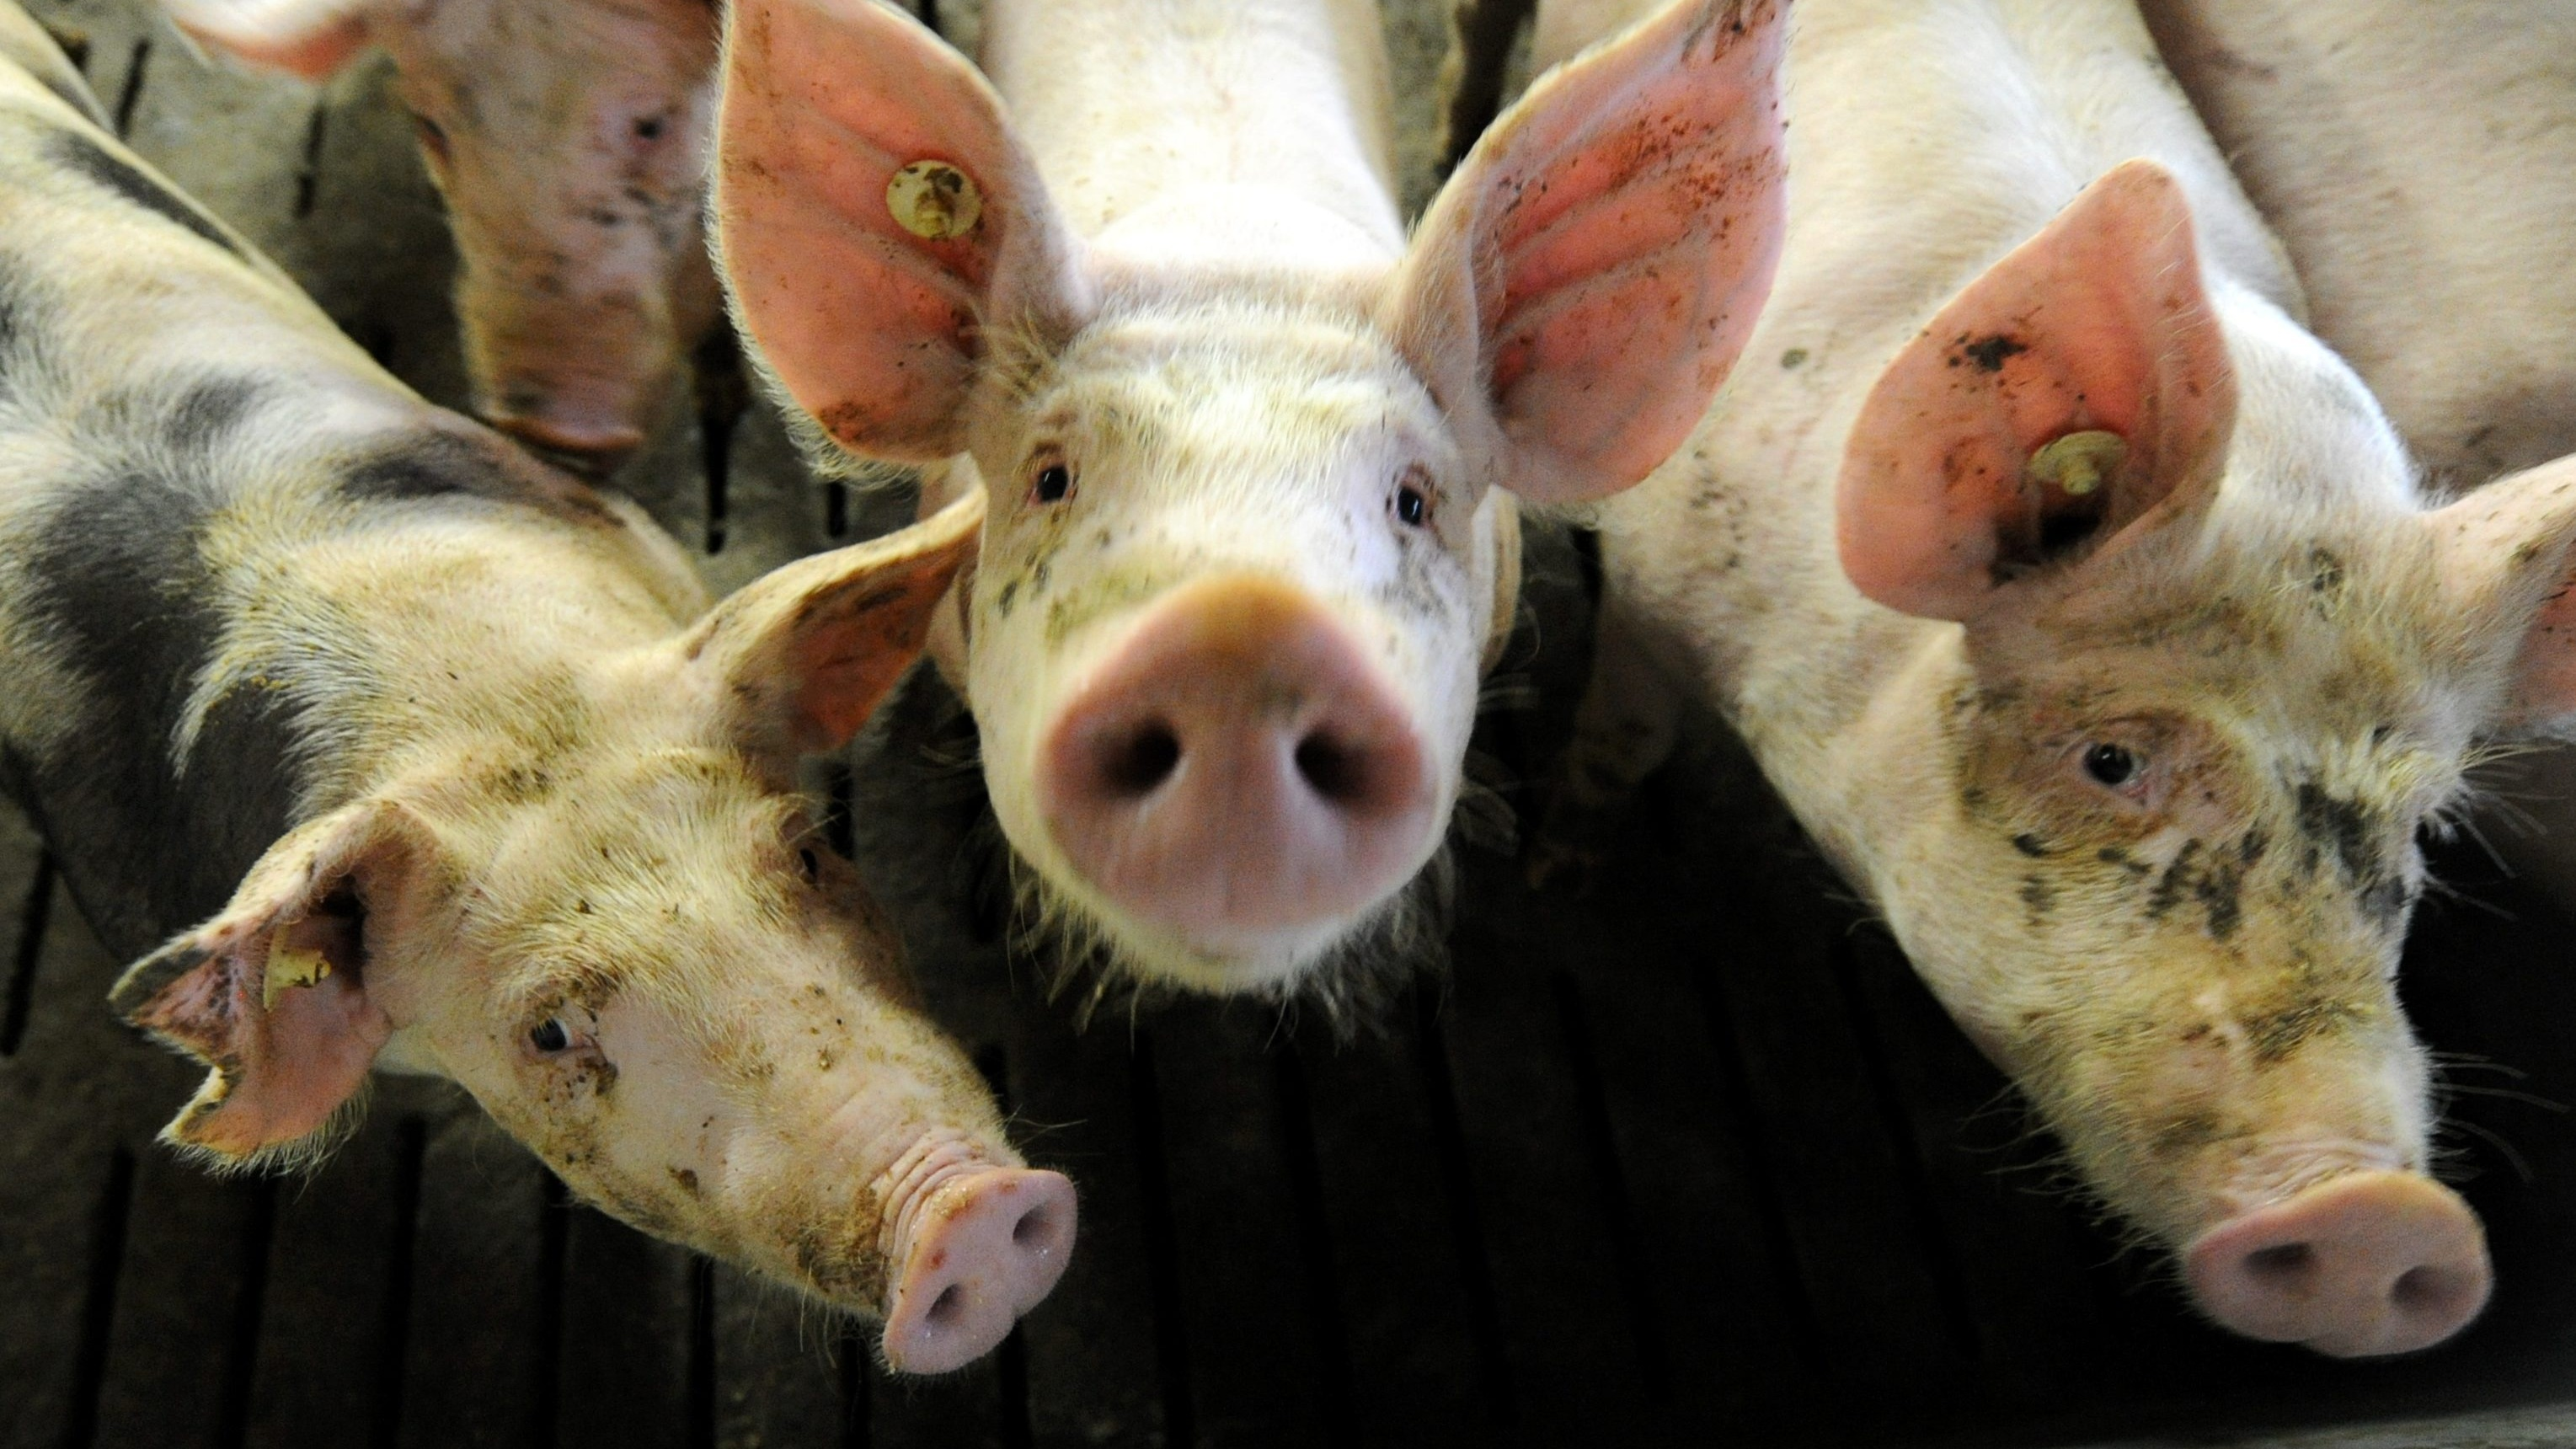 For The Love Of Pork: Antibiotic Use On Farms Skyrockets Worldwide